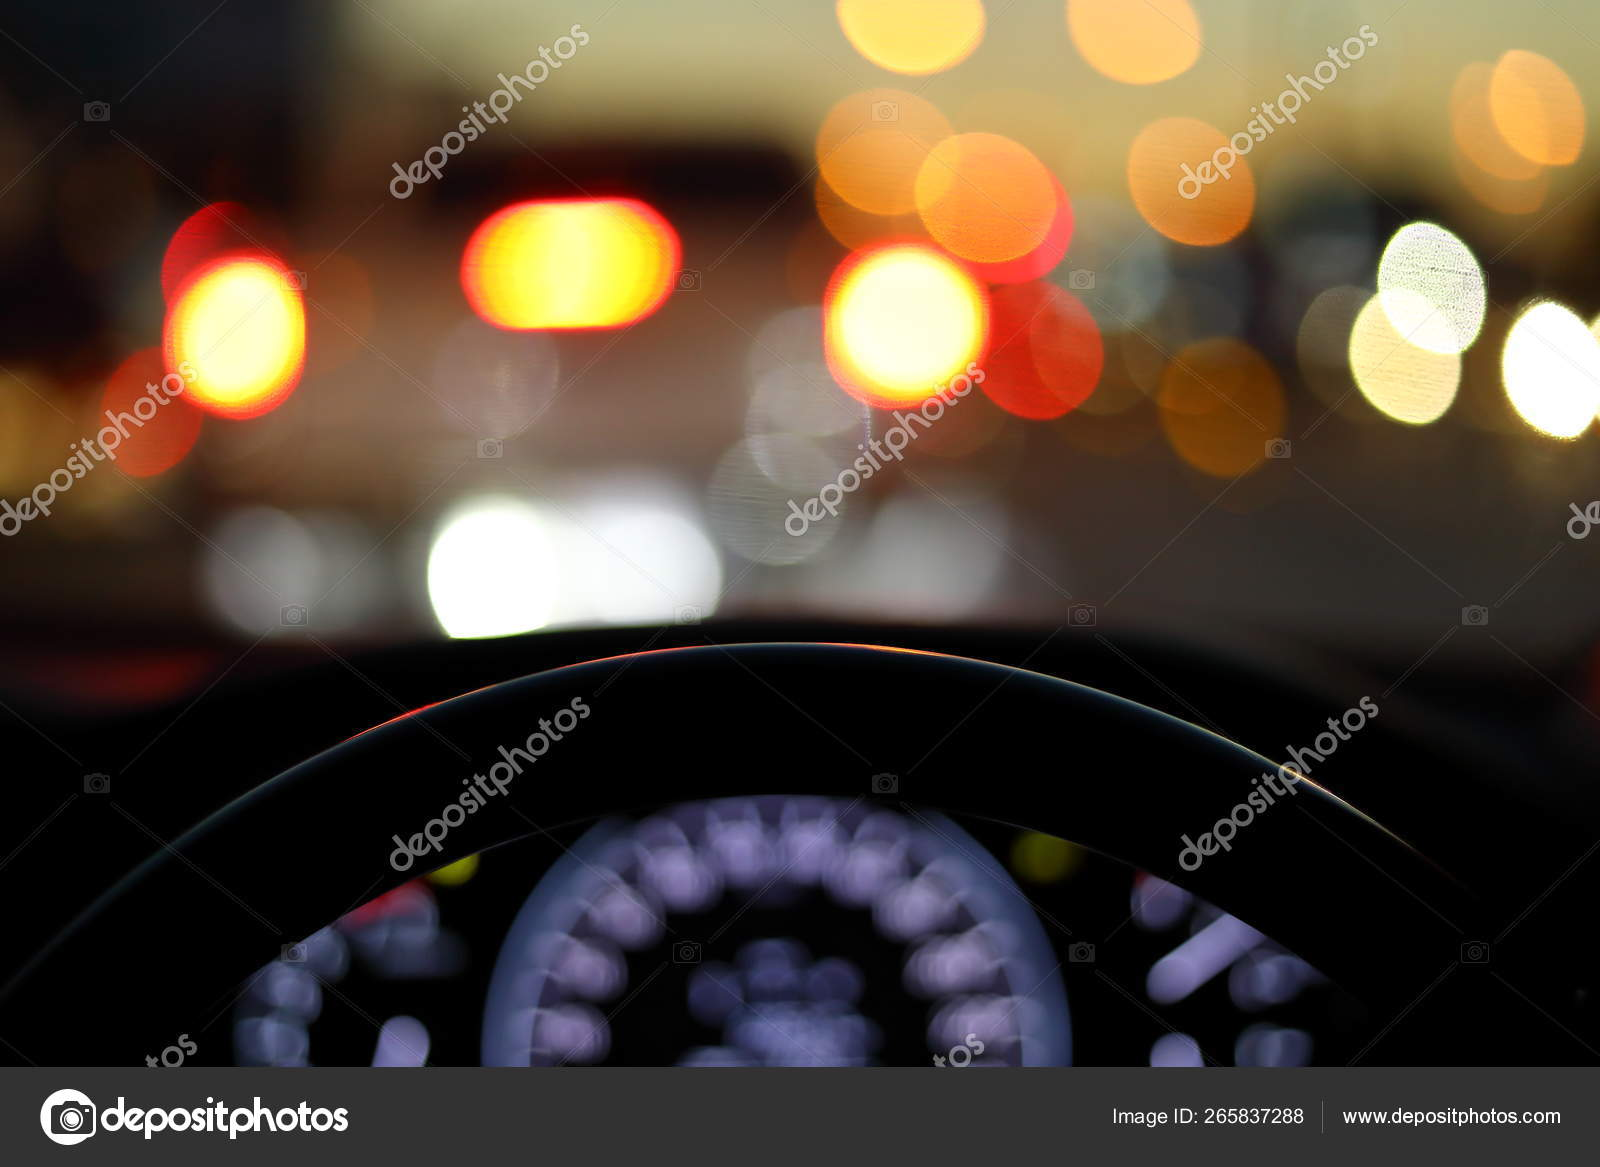 Vehicle Car Steering Wheel And Blur Bokeh Abstract Background Stock Photo Image By C Sutichak 265837288